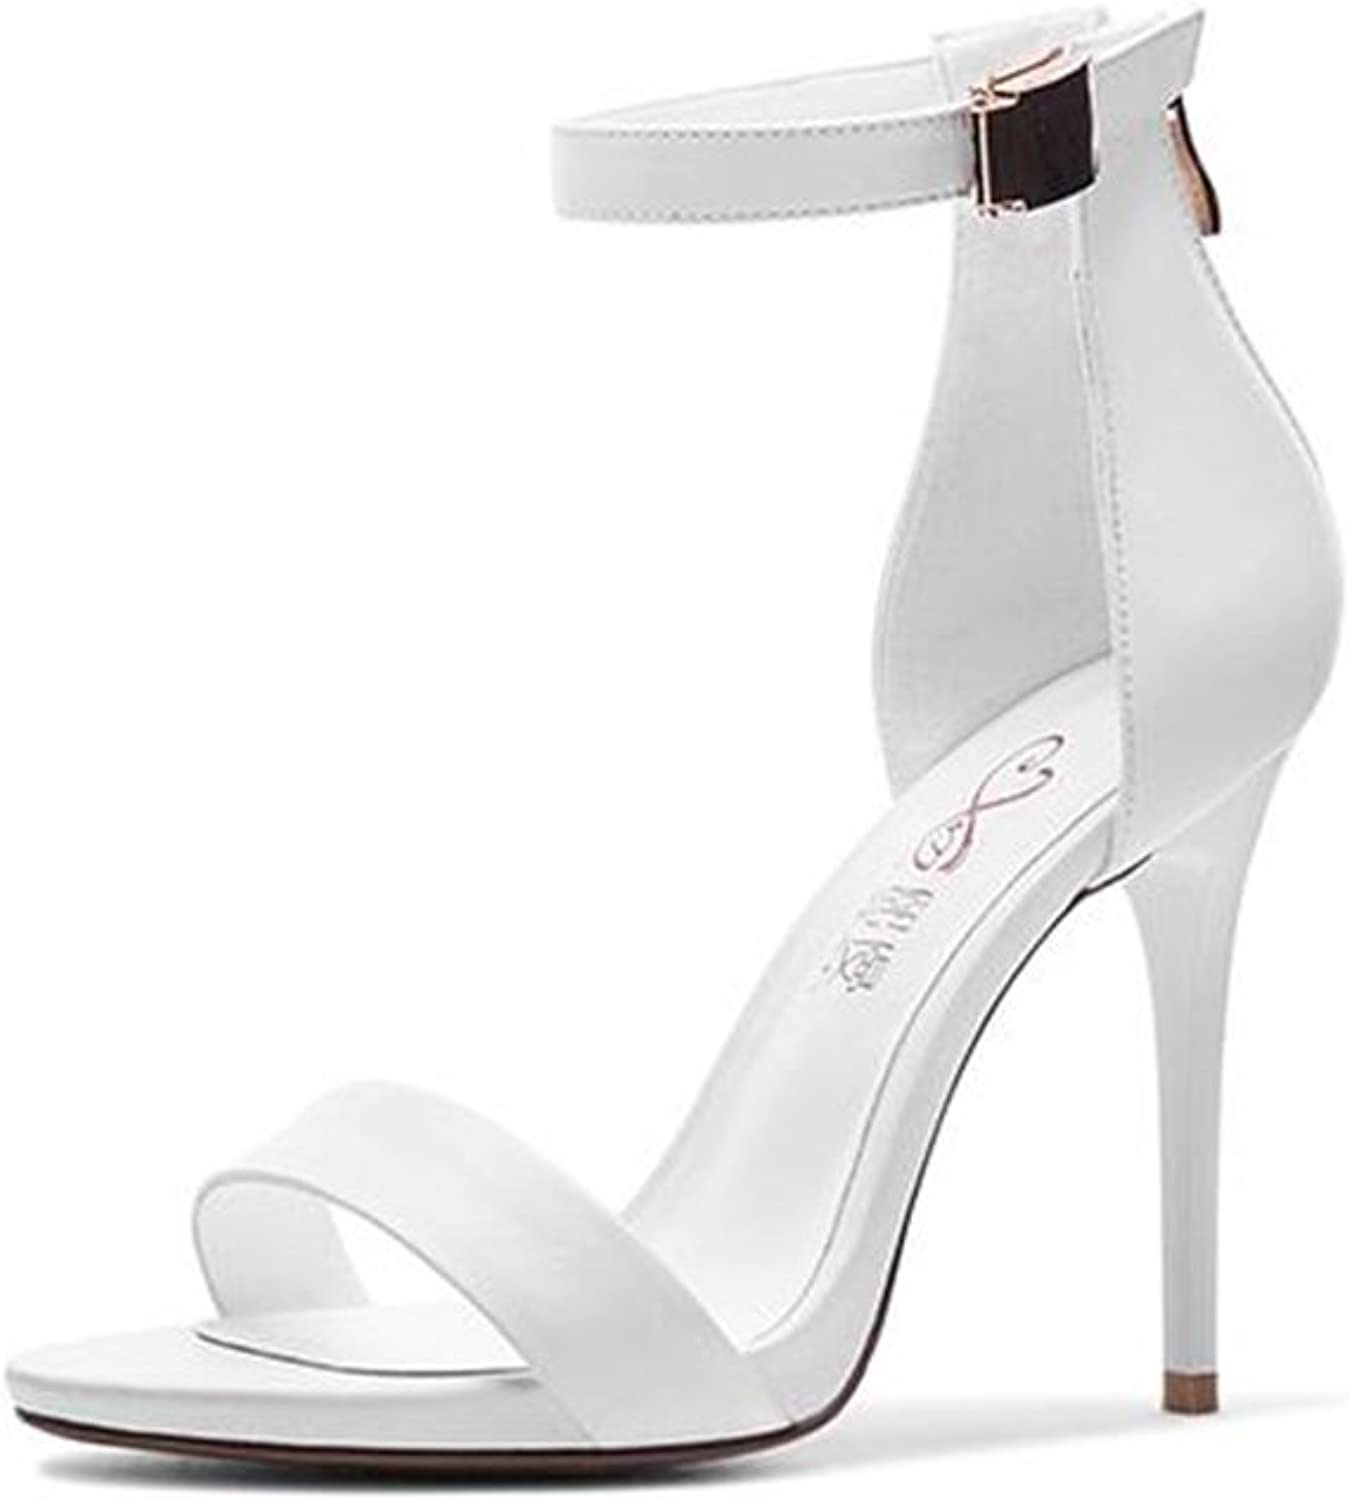 CJC High-Heeled Sandals Open Toe High Heels Thin Heels Women's shoes (color   White, Size   EU39 UK6)